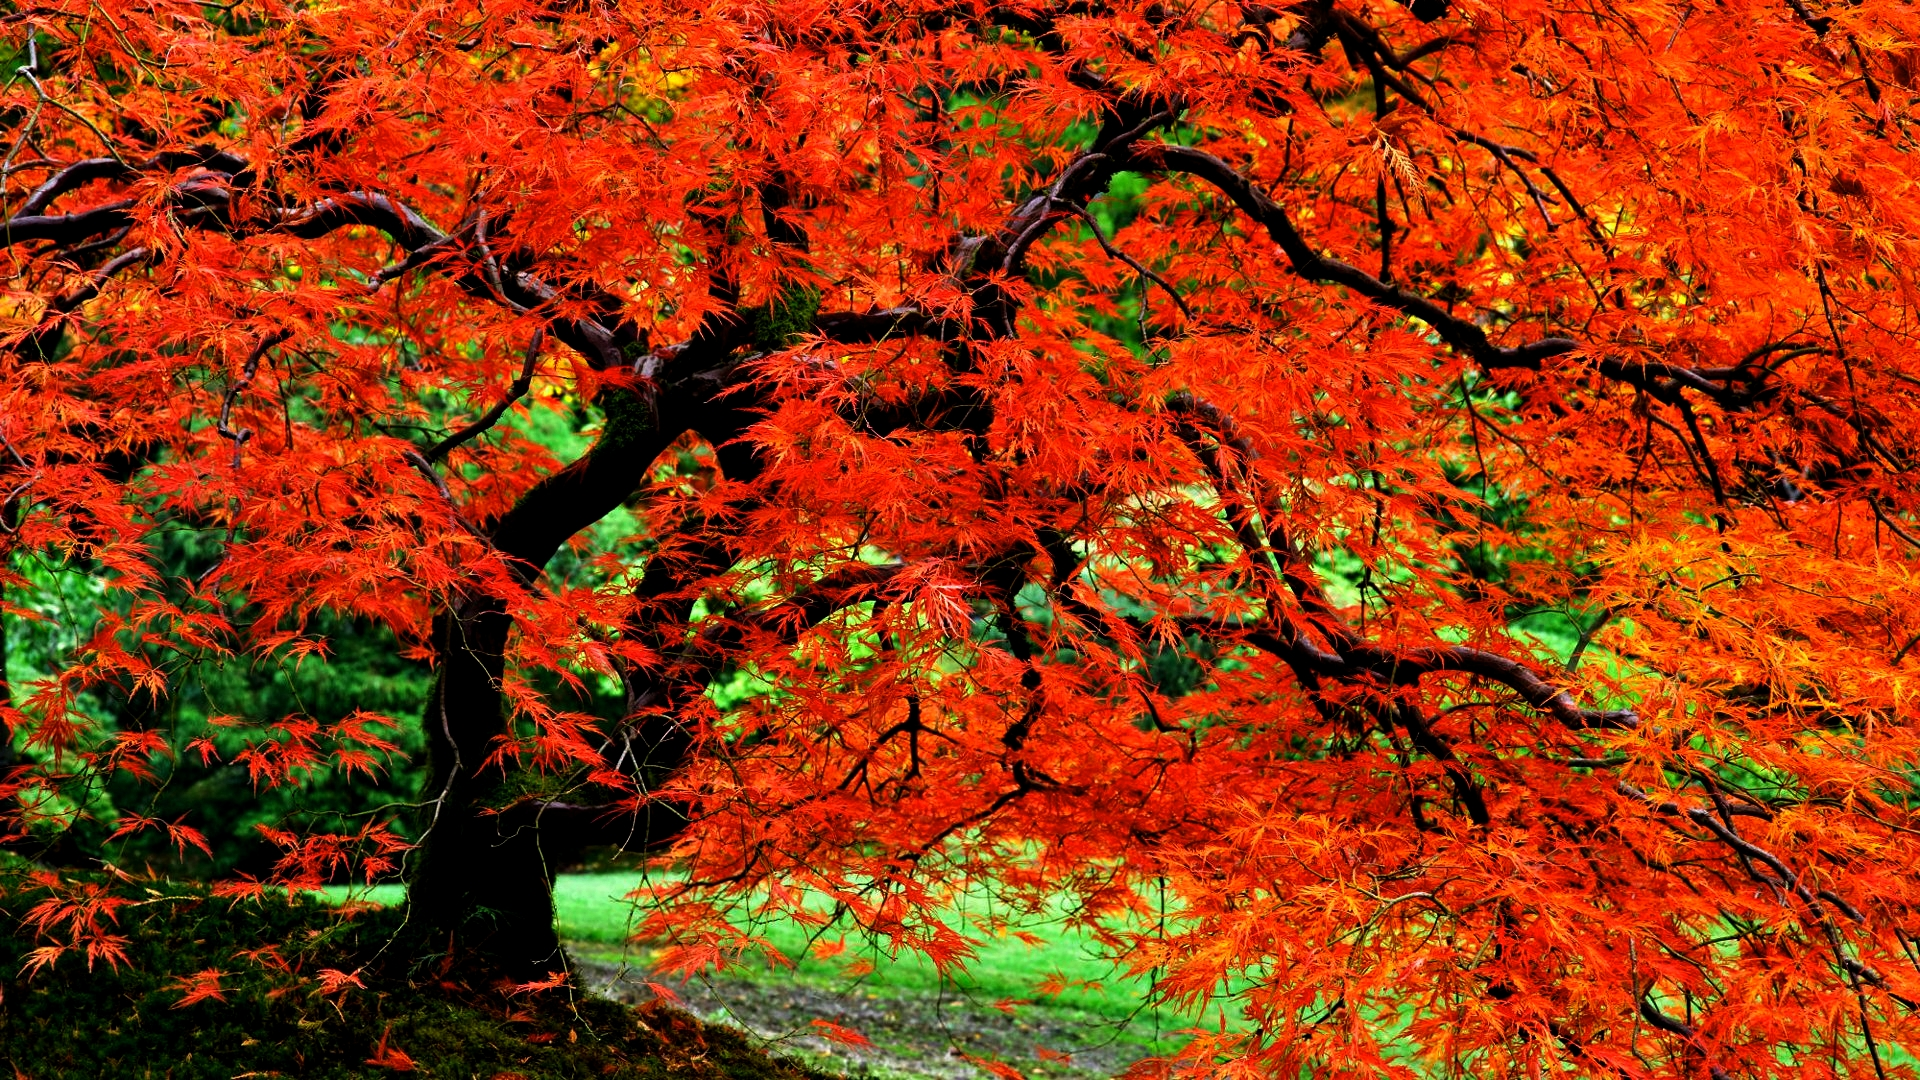 Autumn Tree In Japanese Garden Hd Wallpaper Background Image 1920x1080 Id 686014 Wallpaper Abyss